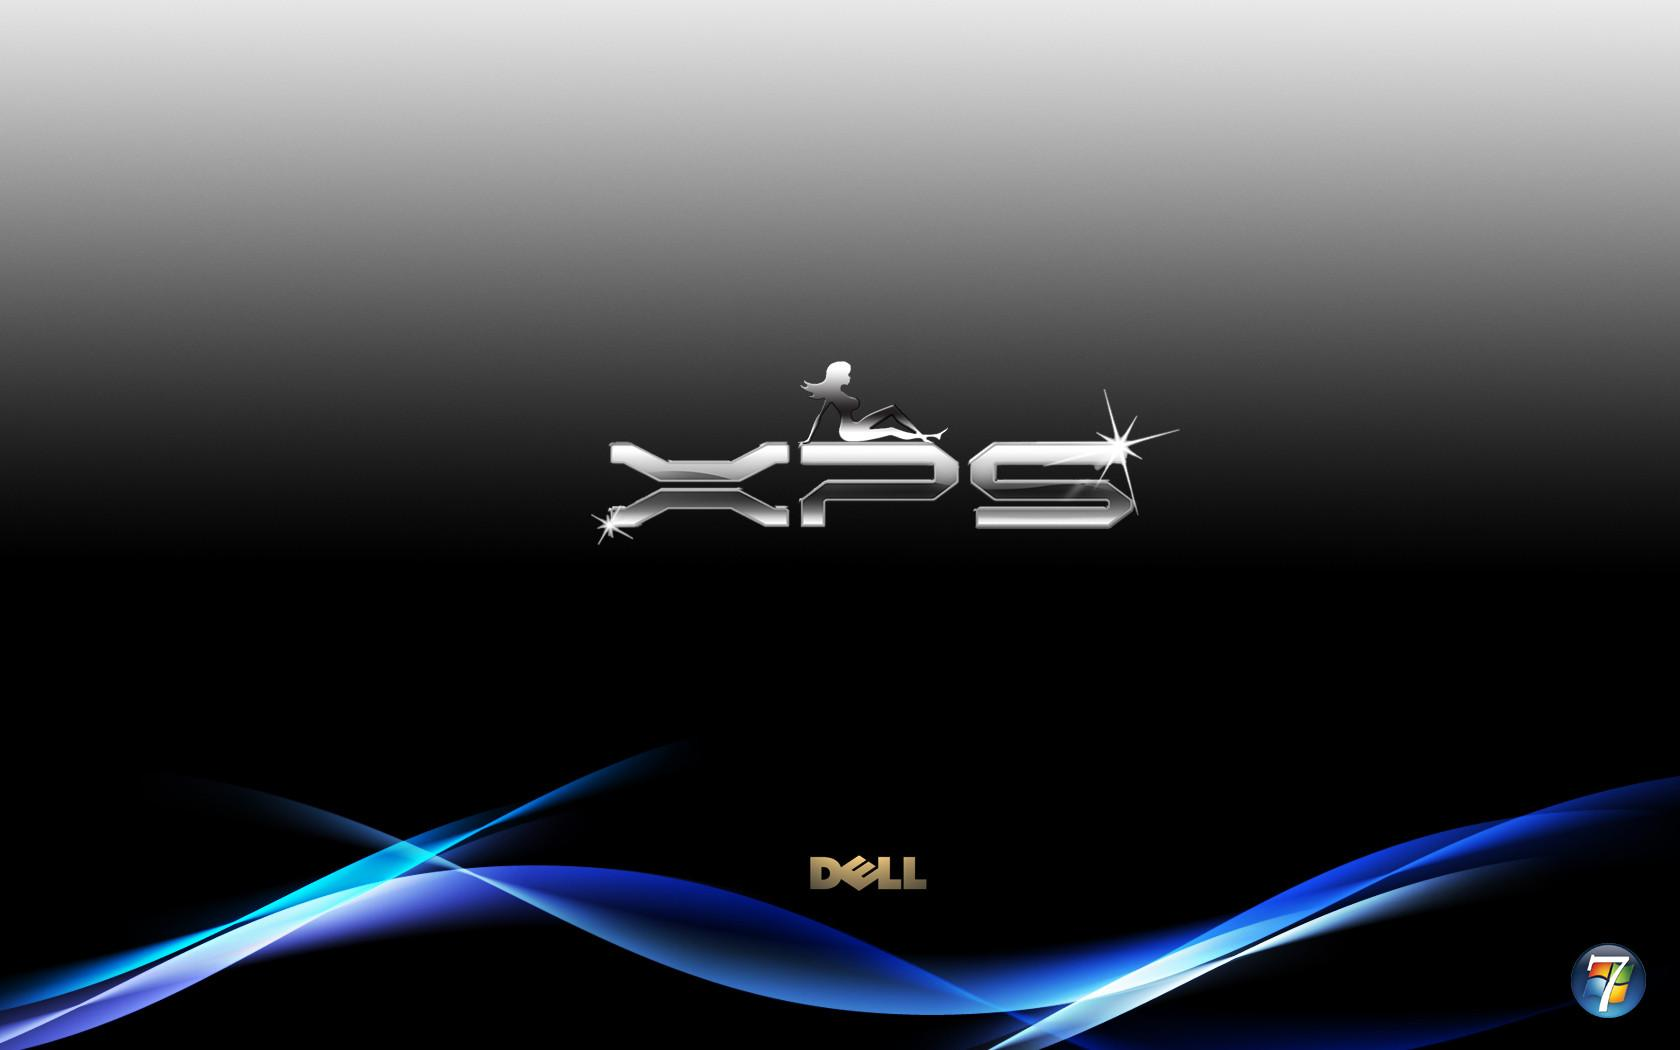 Dell Desktop Background wallpaper Collection of Backgrounds For 1680x1050